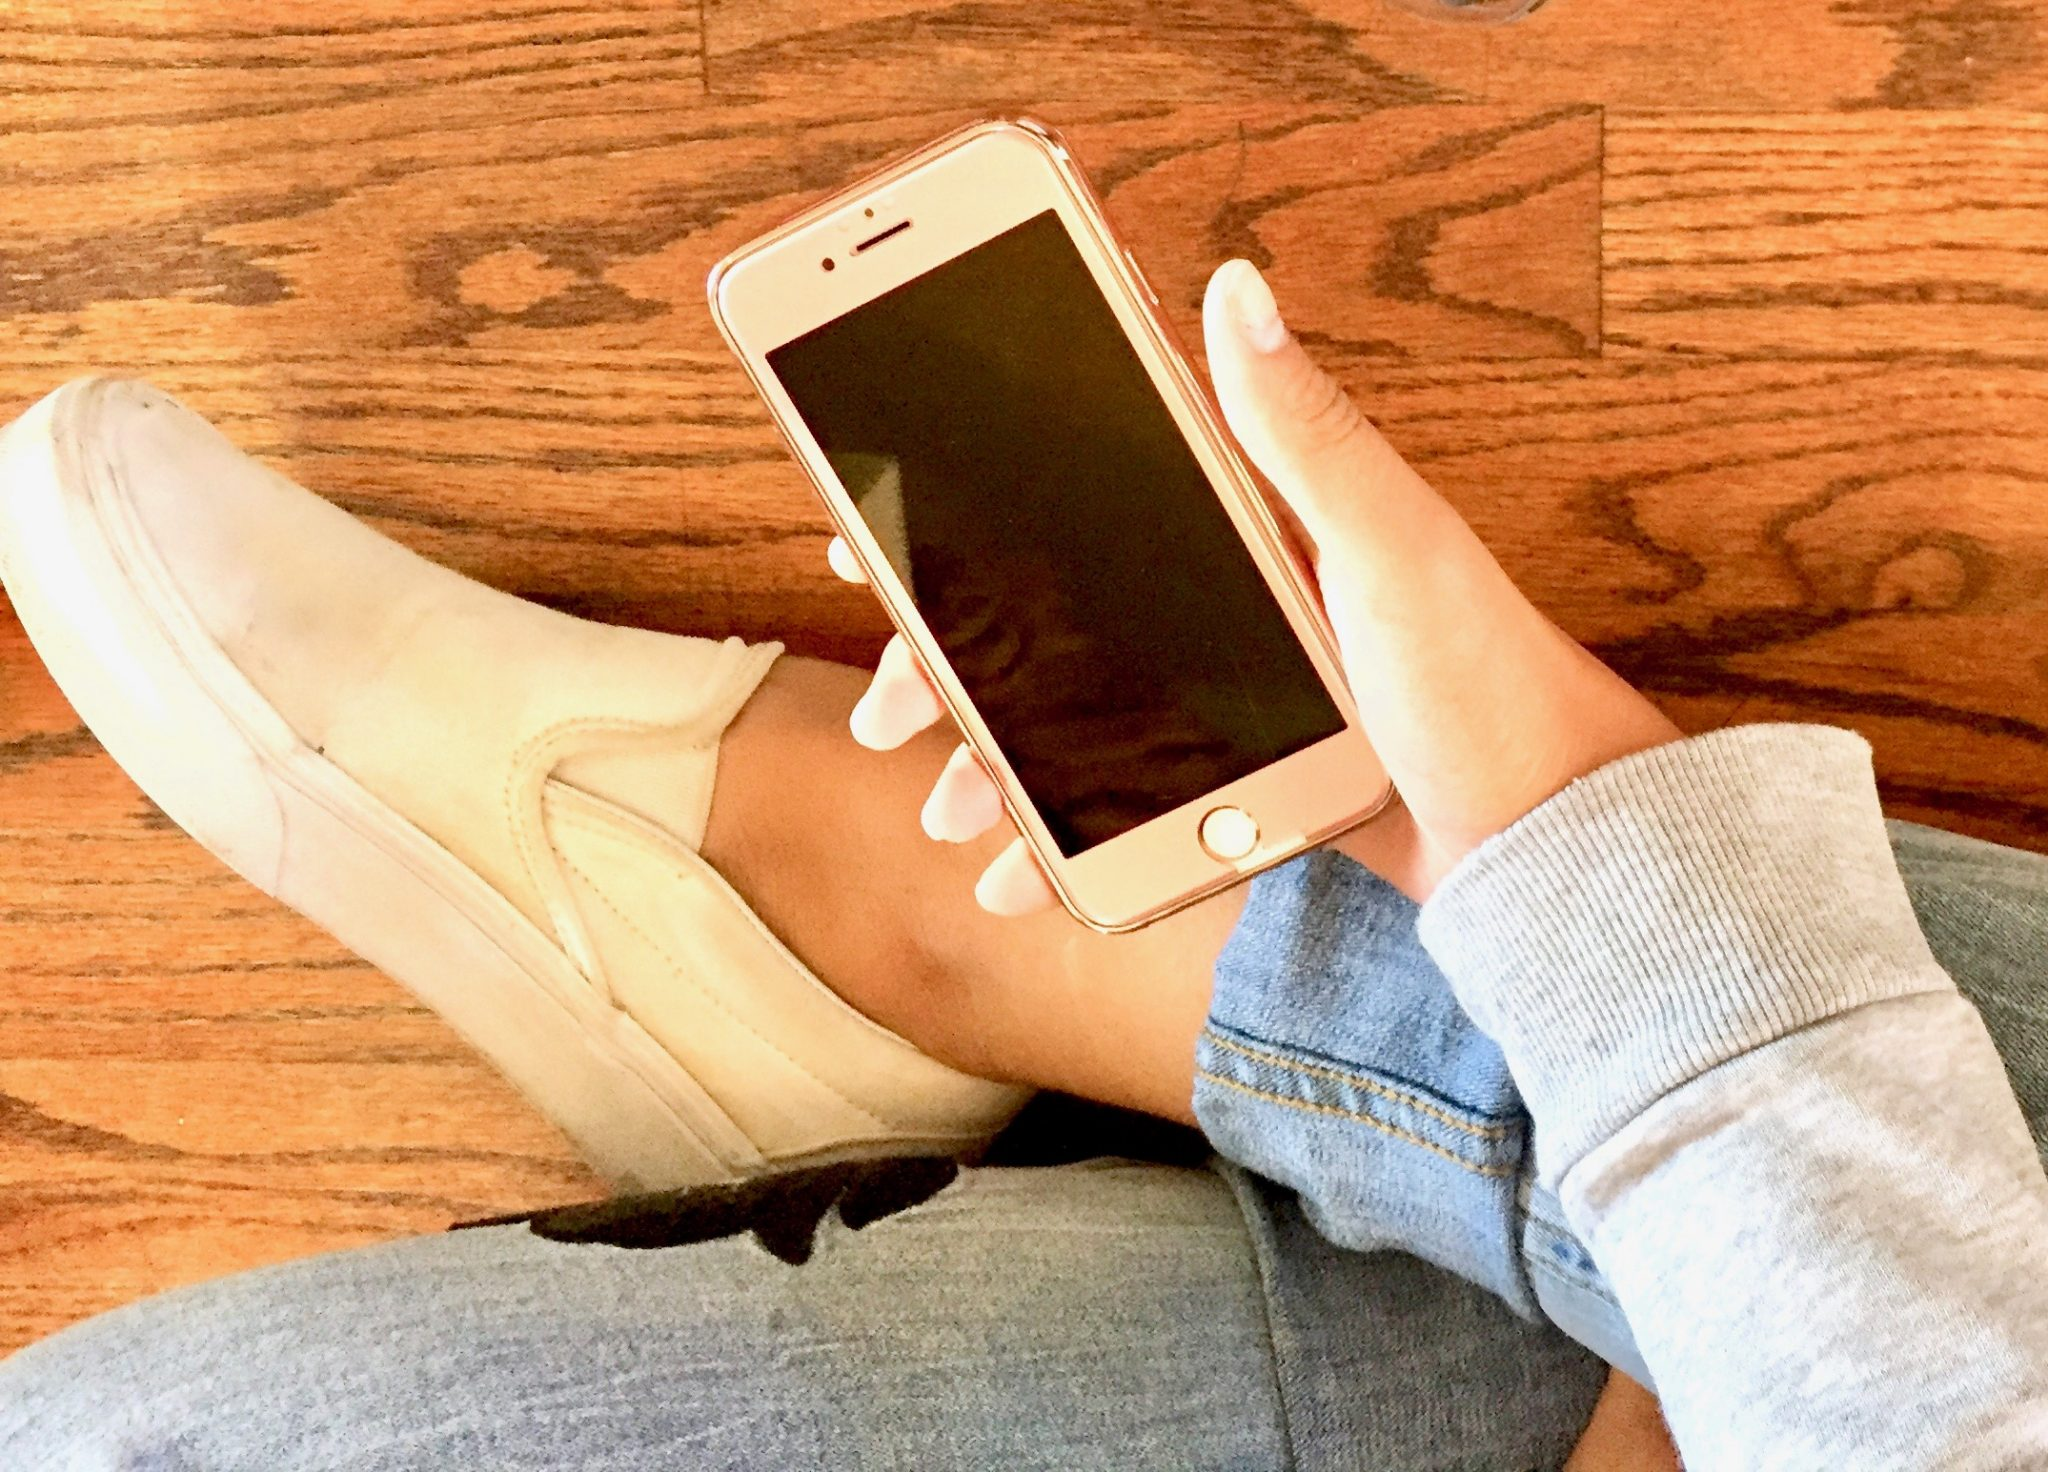 iPhone in girl's hand while sitting on a hardwood floor